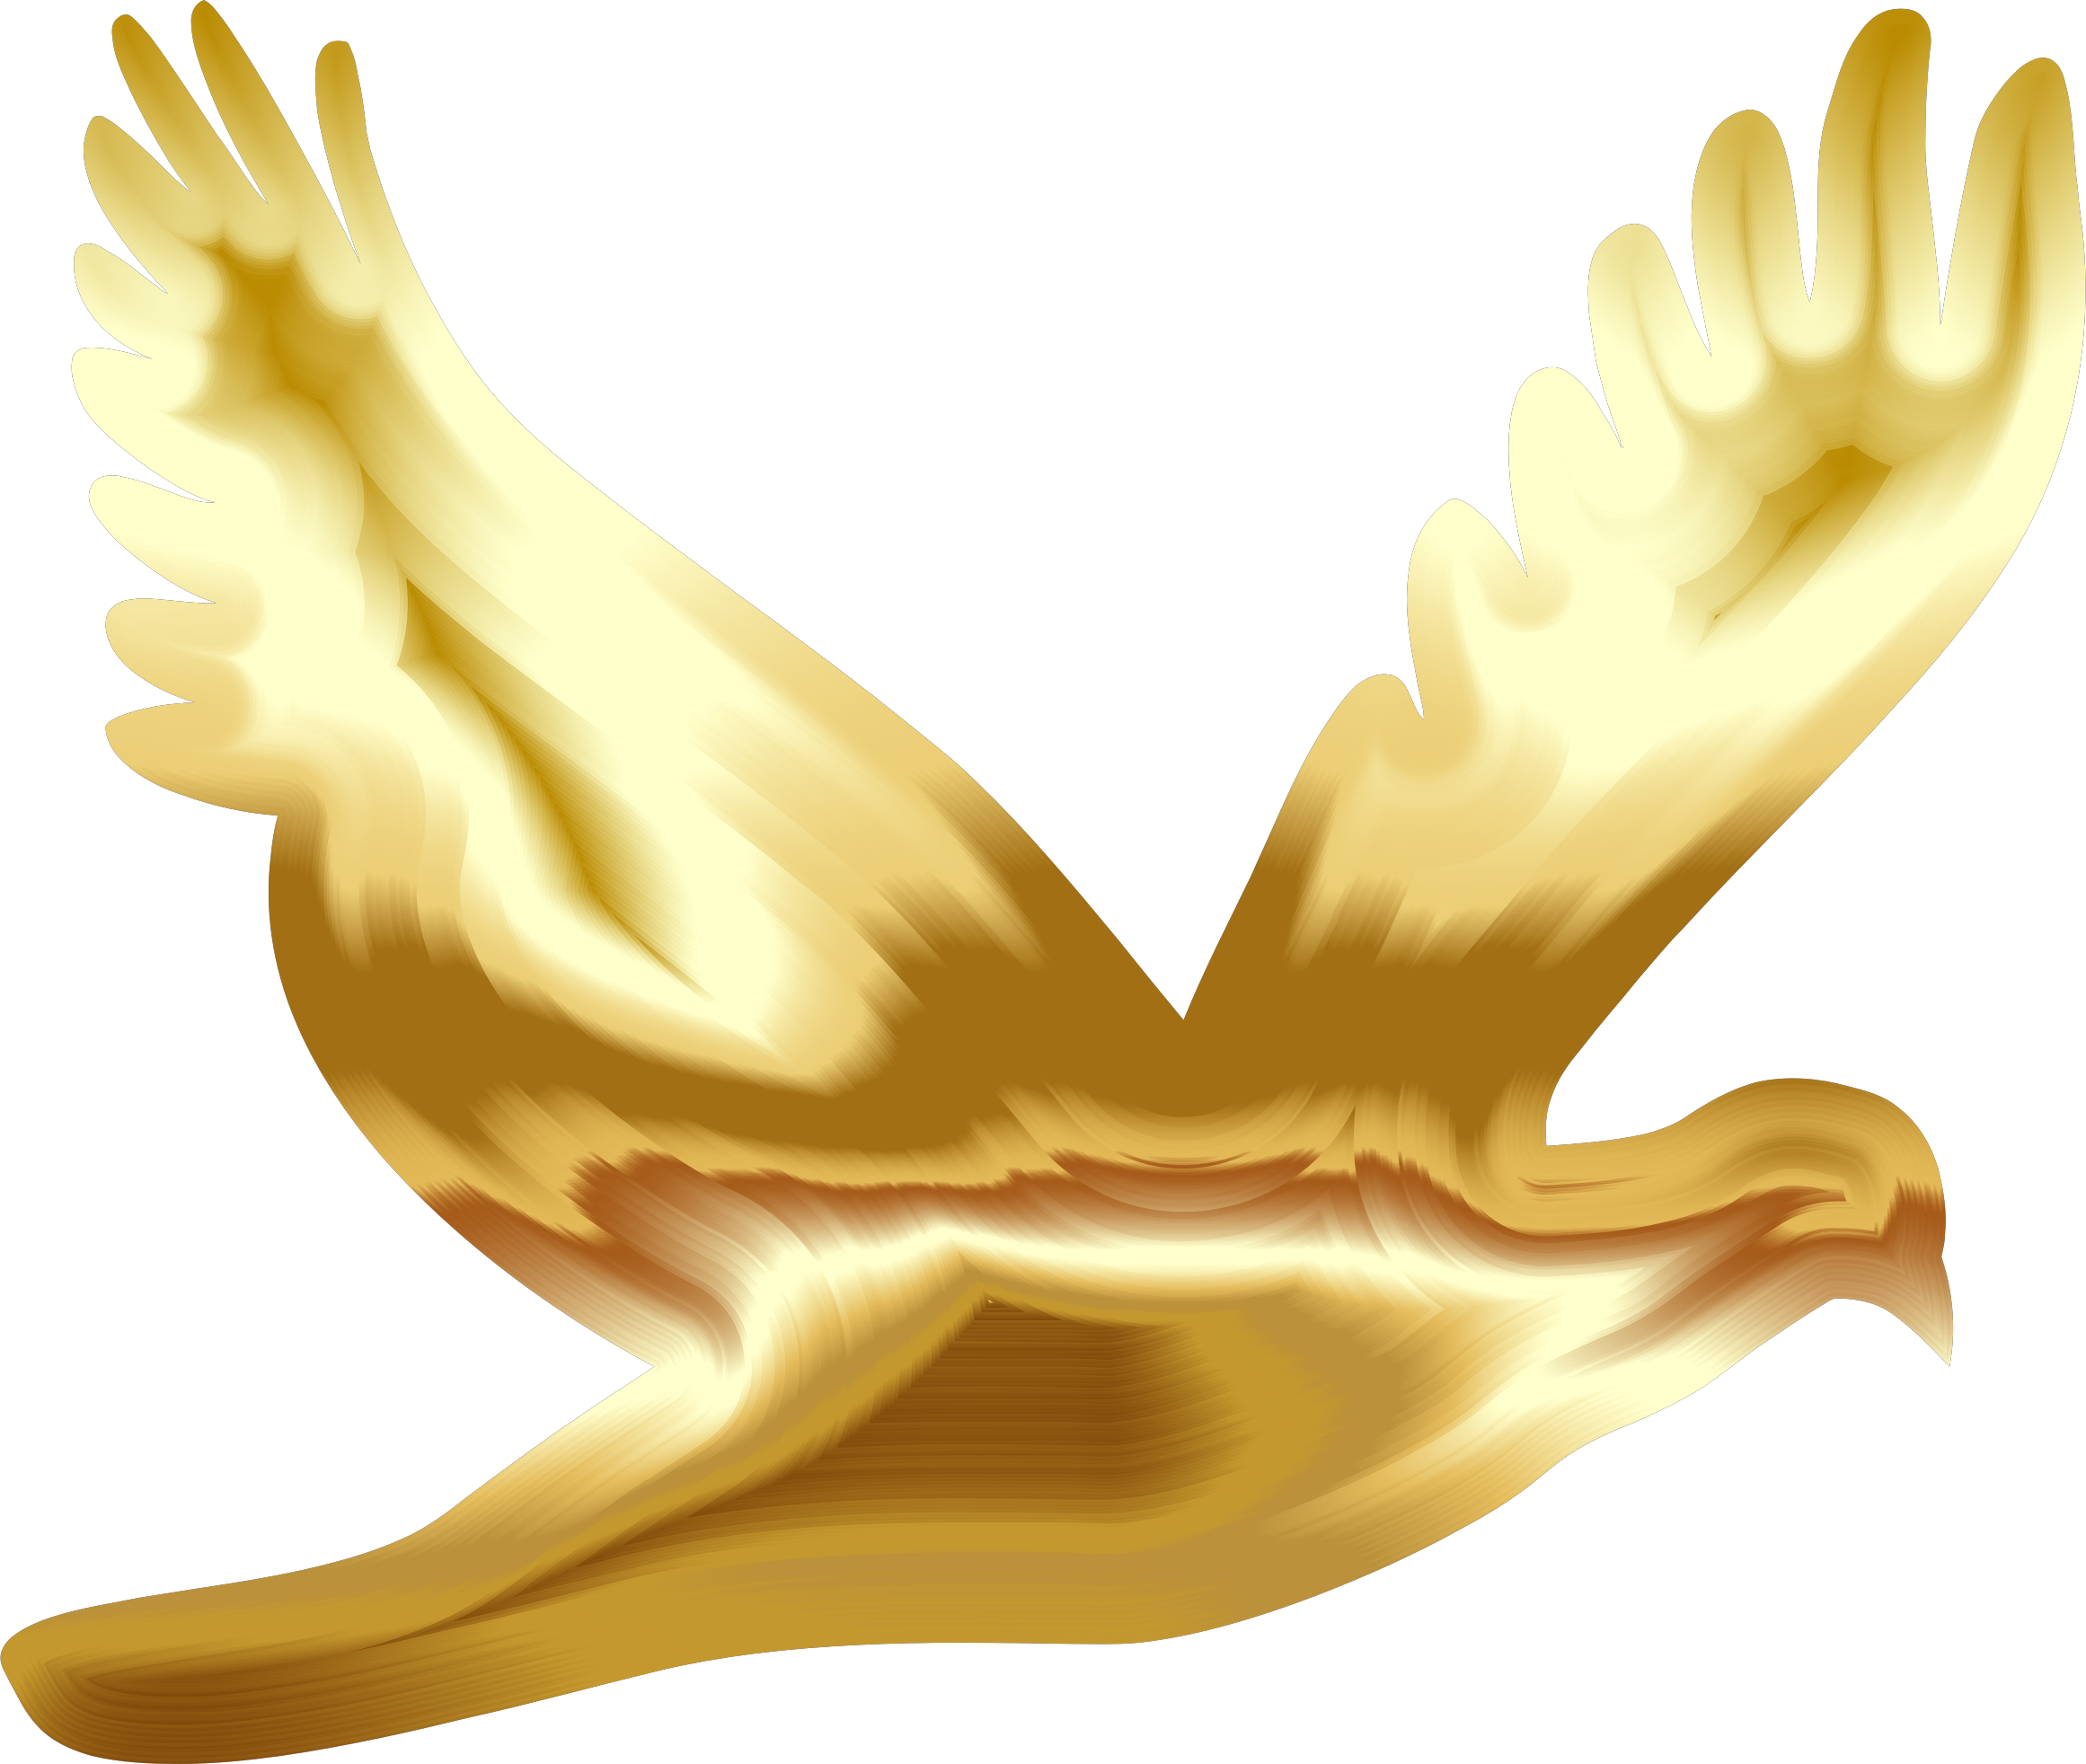 royalty free Flying silhouette no background. Gold clipart dove